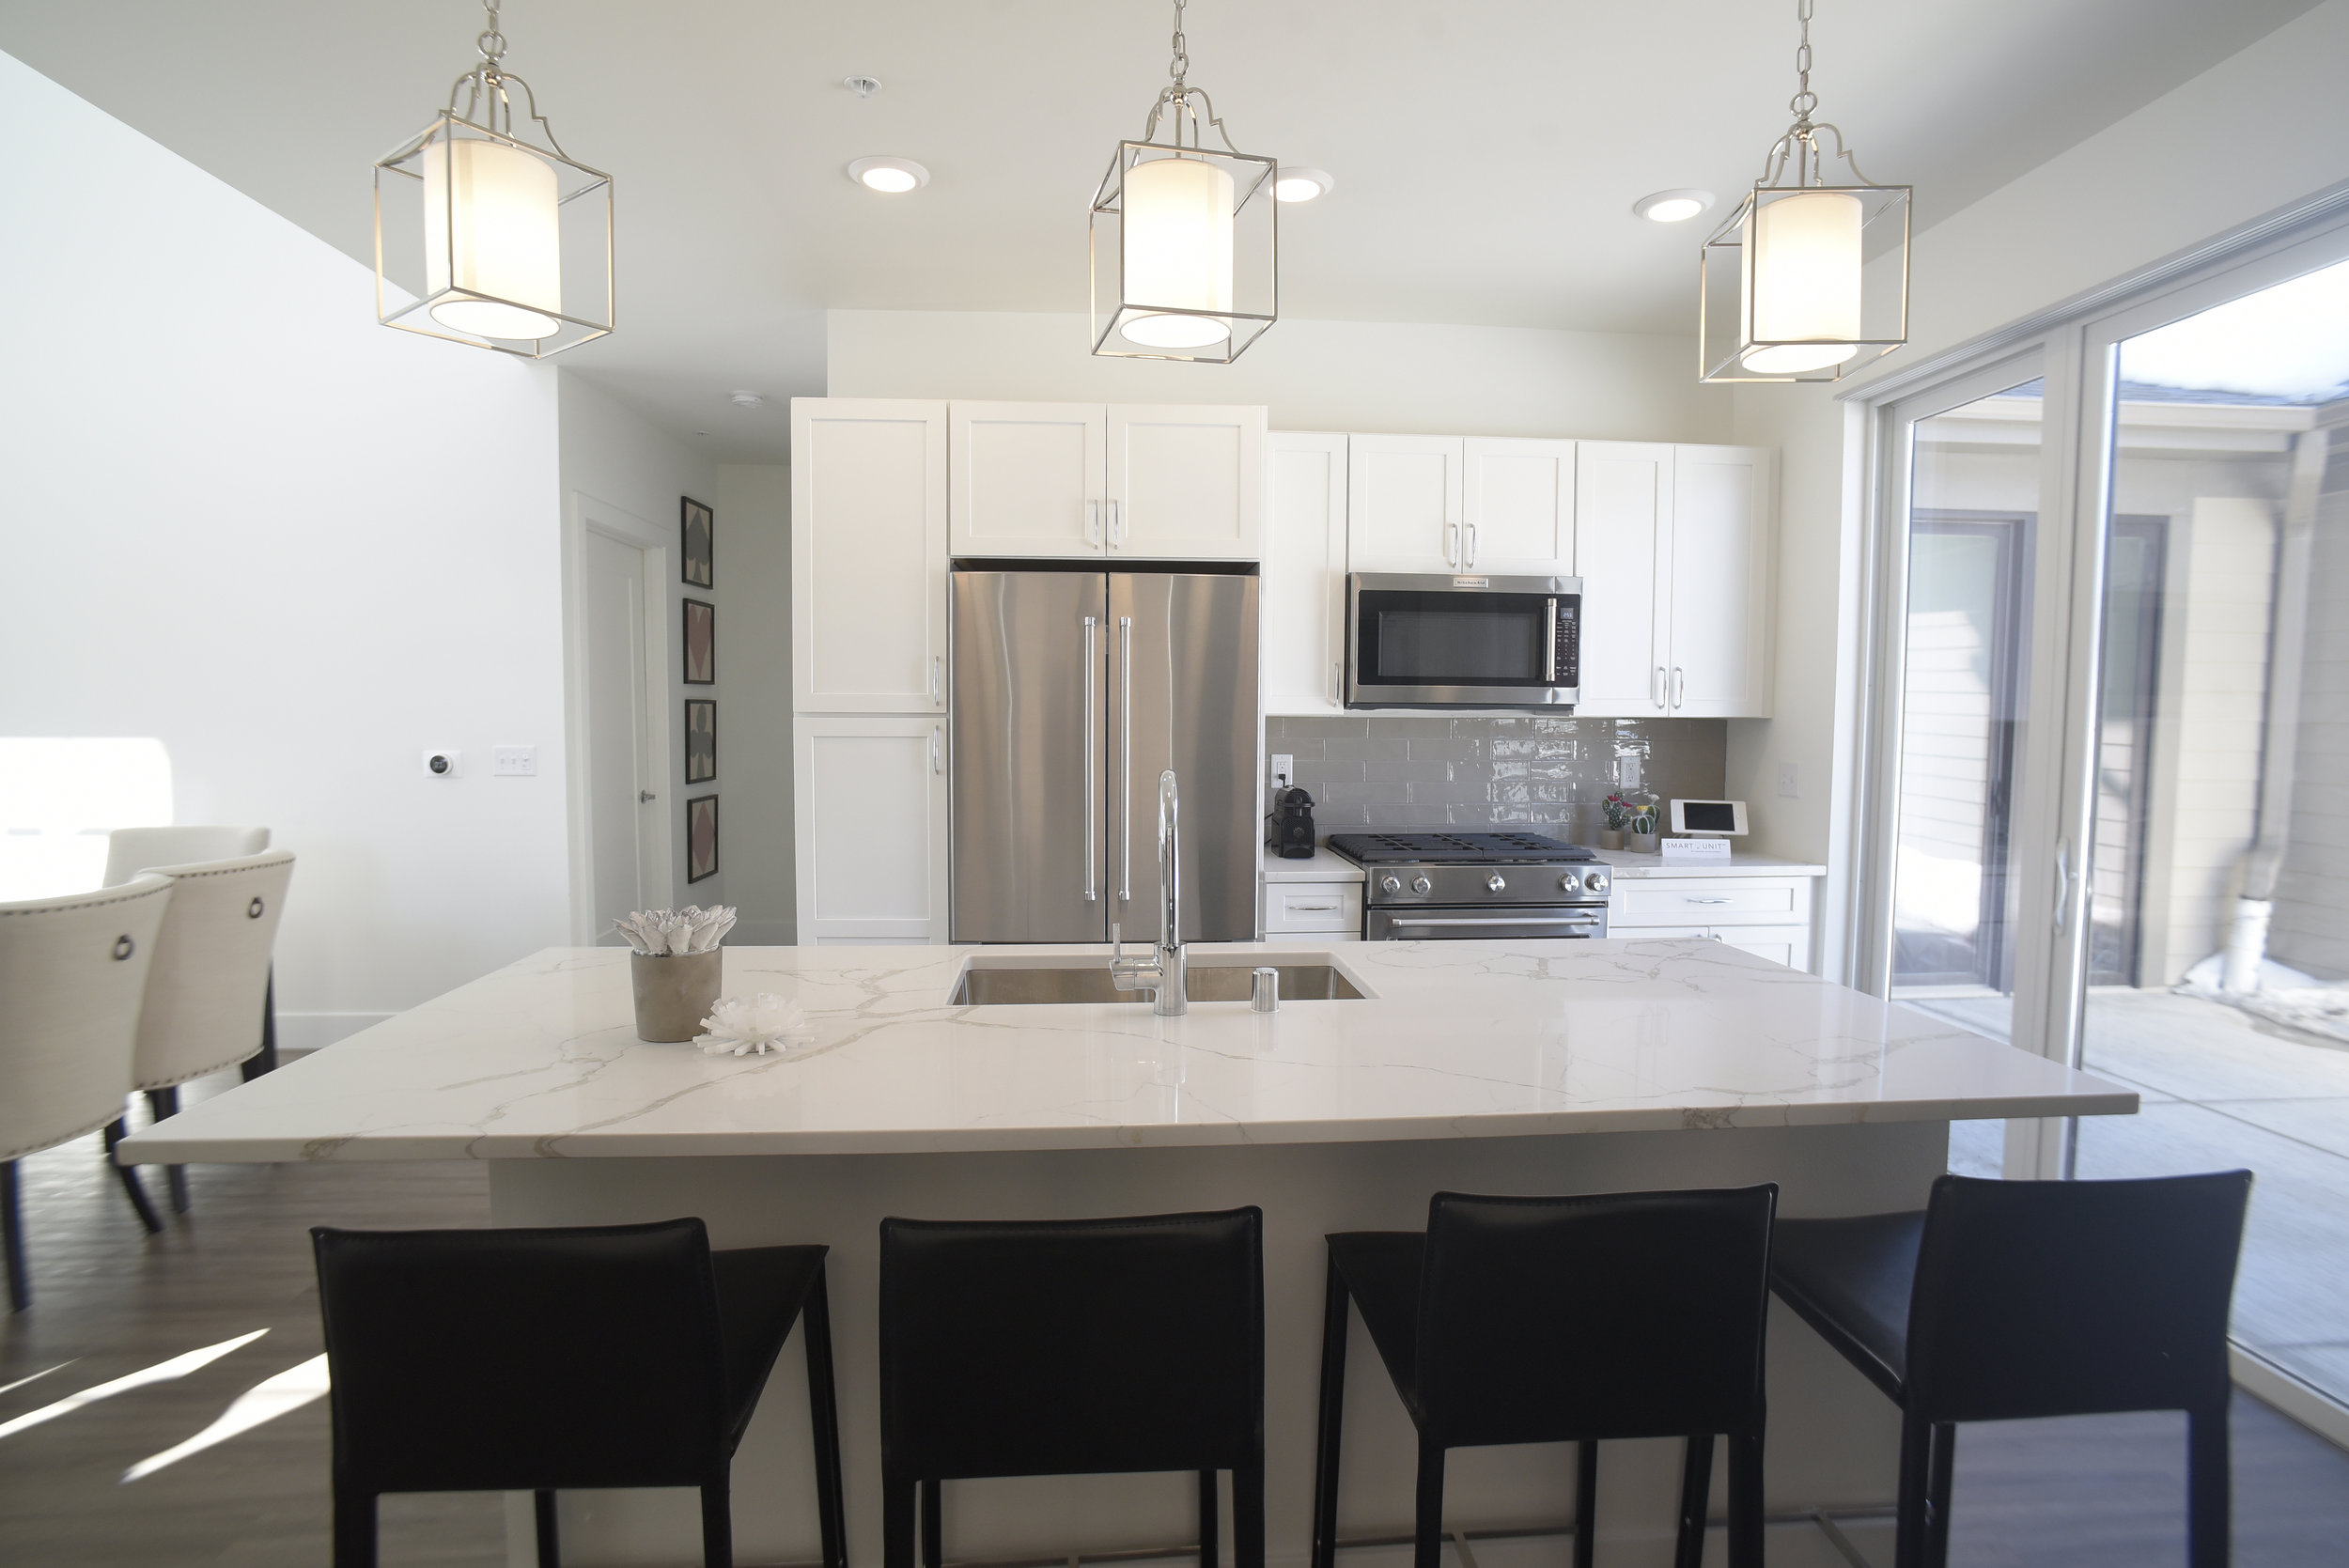 The kitchens in the Spur 16 townhomes feature top-of-the-line appliances and other amenities.    Submitted photo